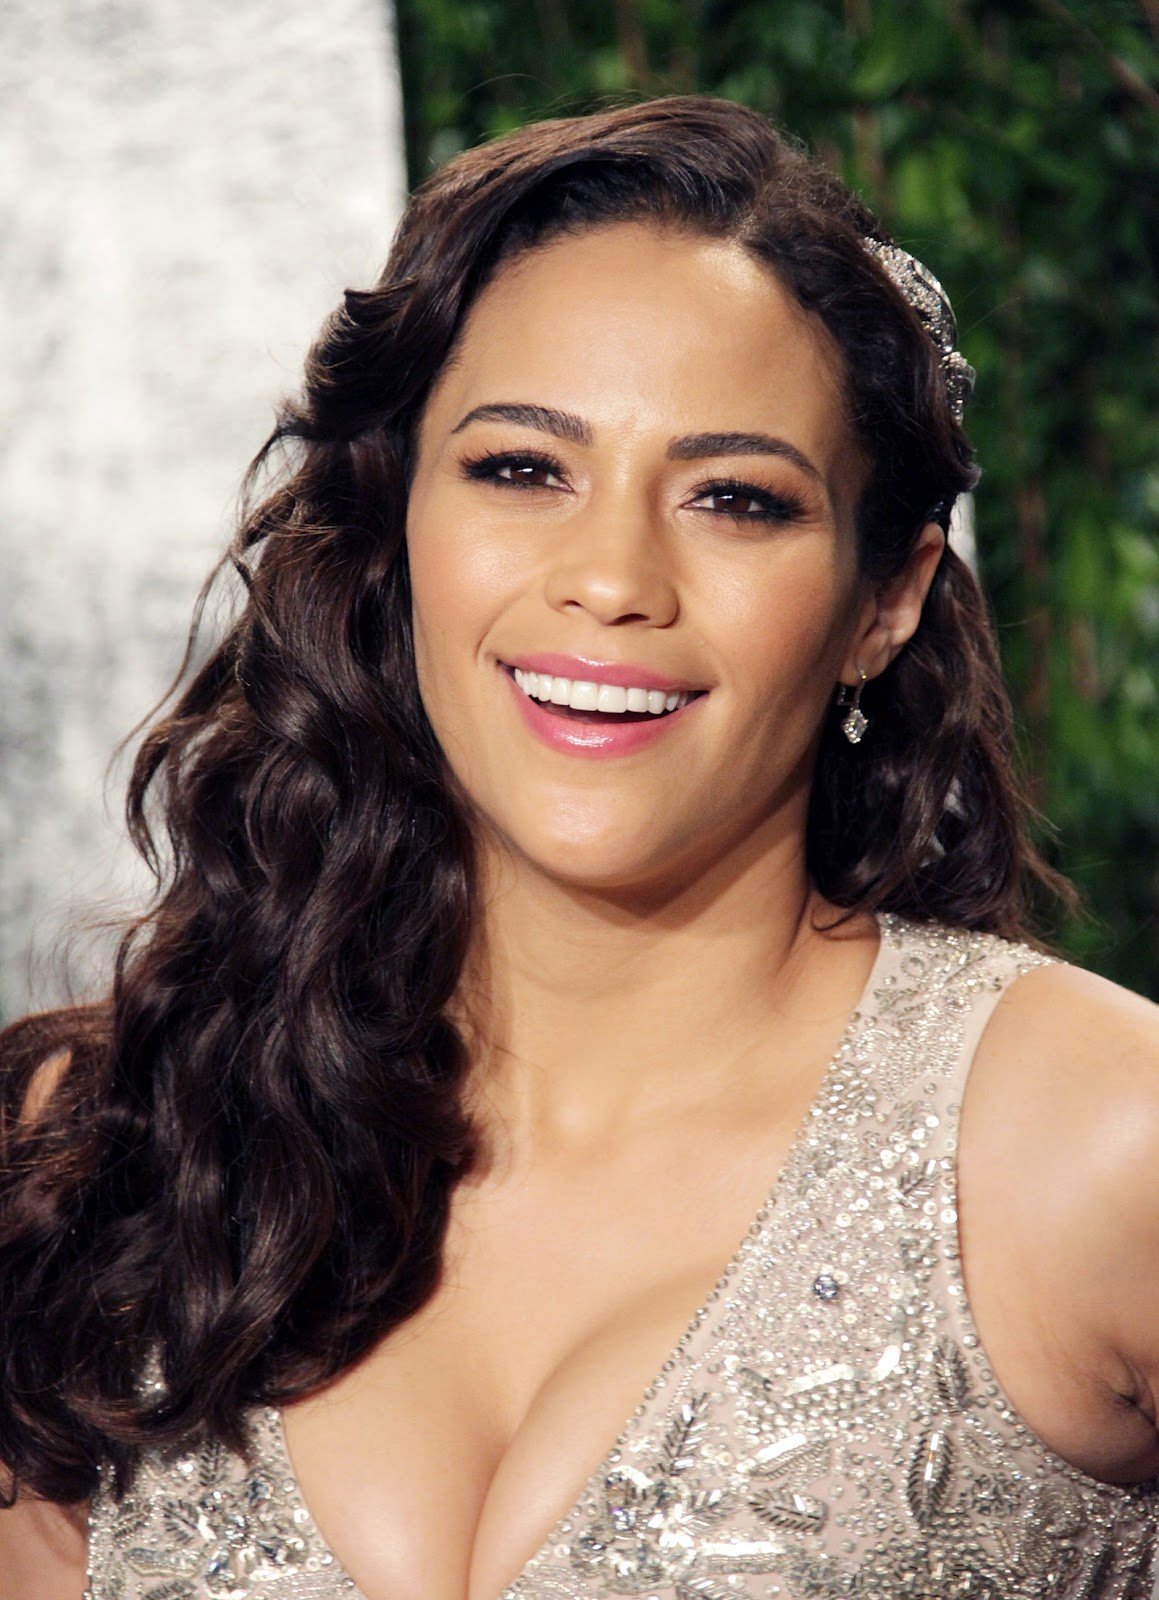 Paparazzi Boobs Paula Patton  nudes (24 fotos), Facebook, butt